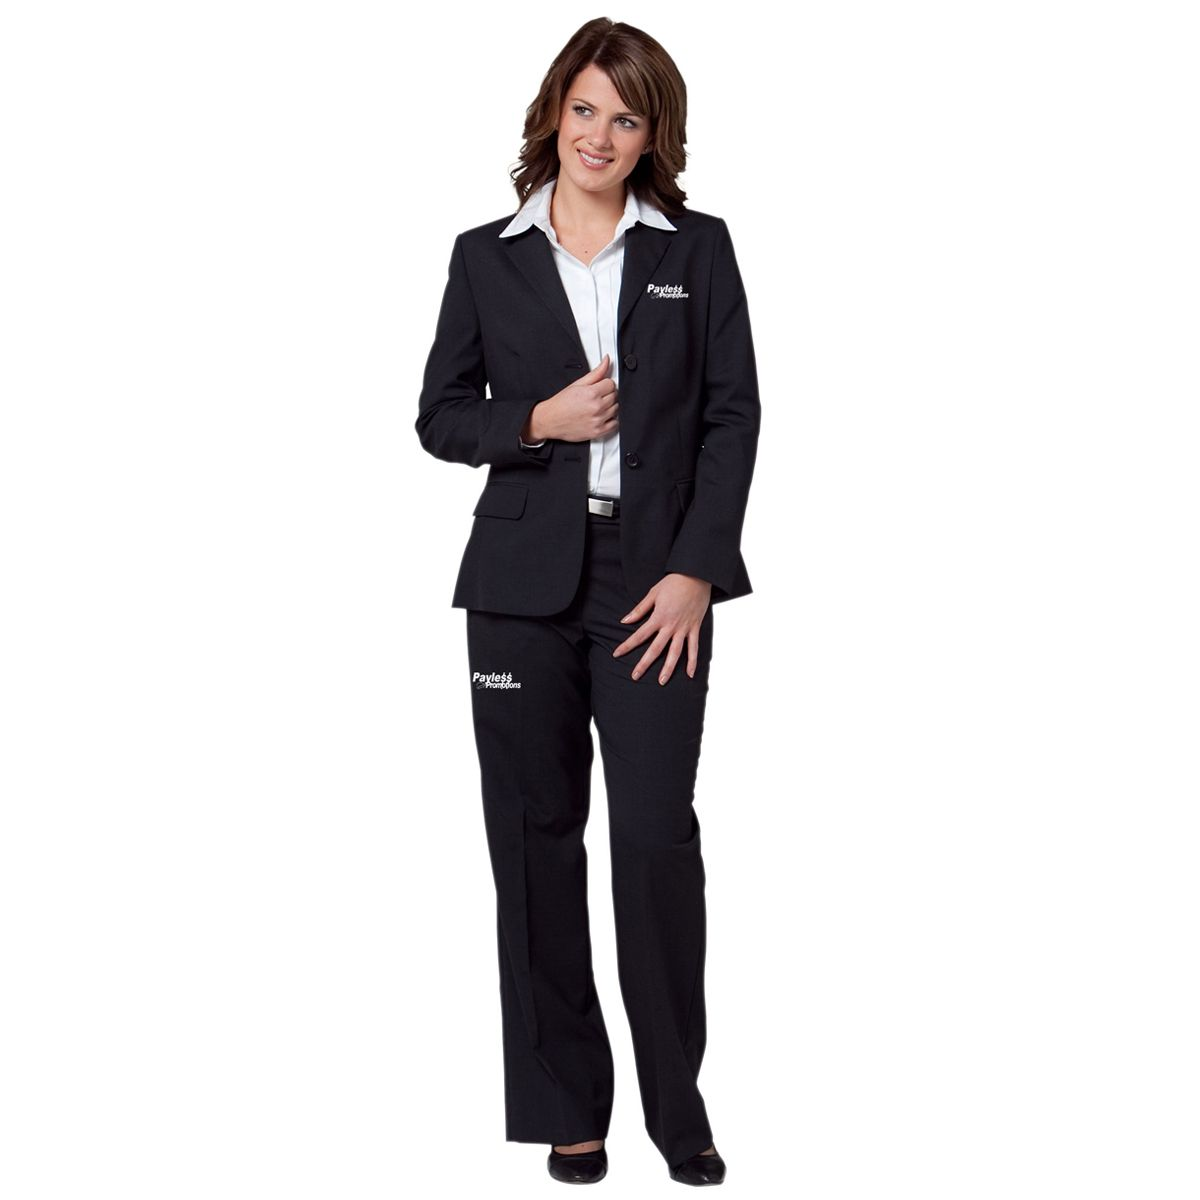 M9206 Ladies Poly/Viscose Two Button Embroidered Suit Jackets